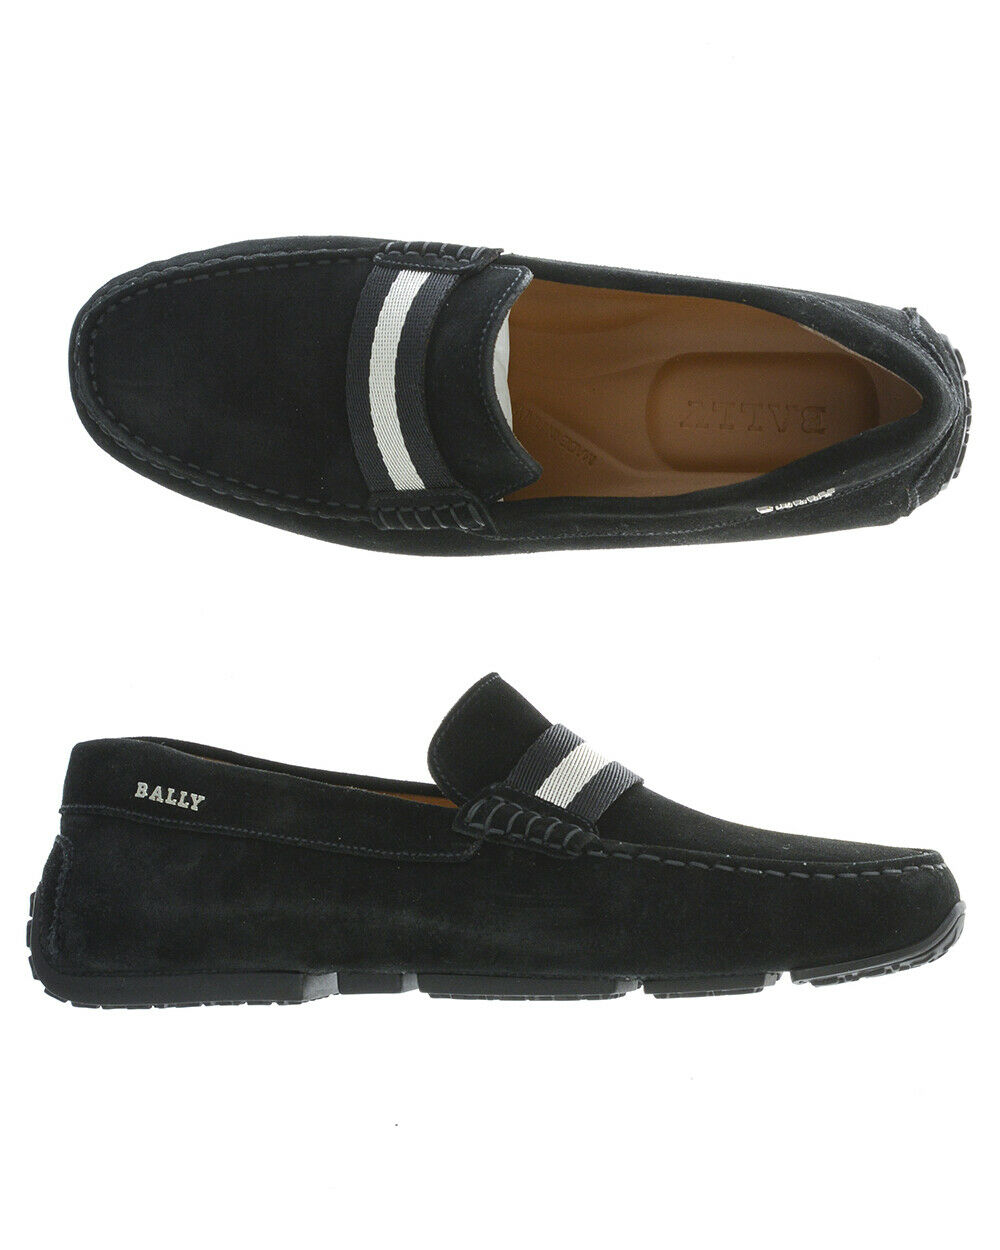 Mocassin Bally shoes PEARCE Cuir Homme black 6212806 101 TL. 40,5 FAIRE OFFRE